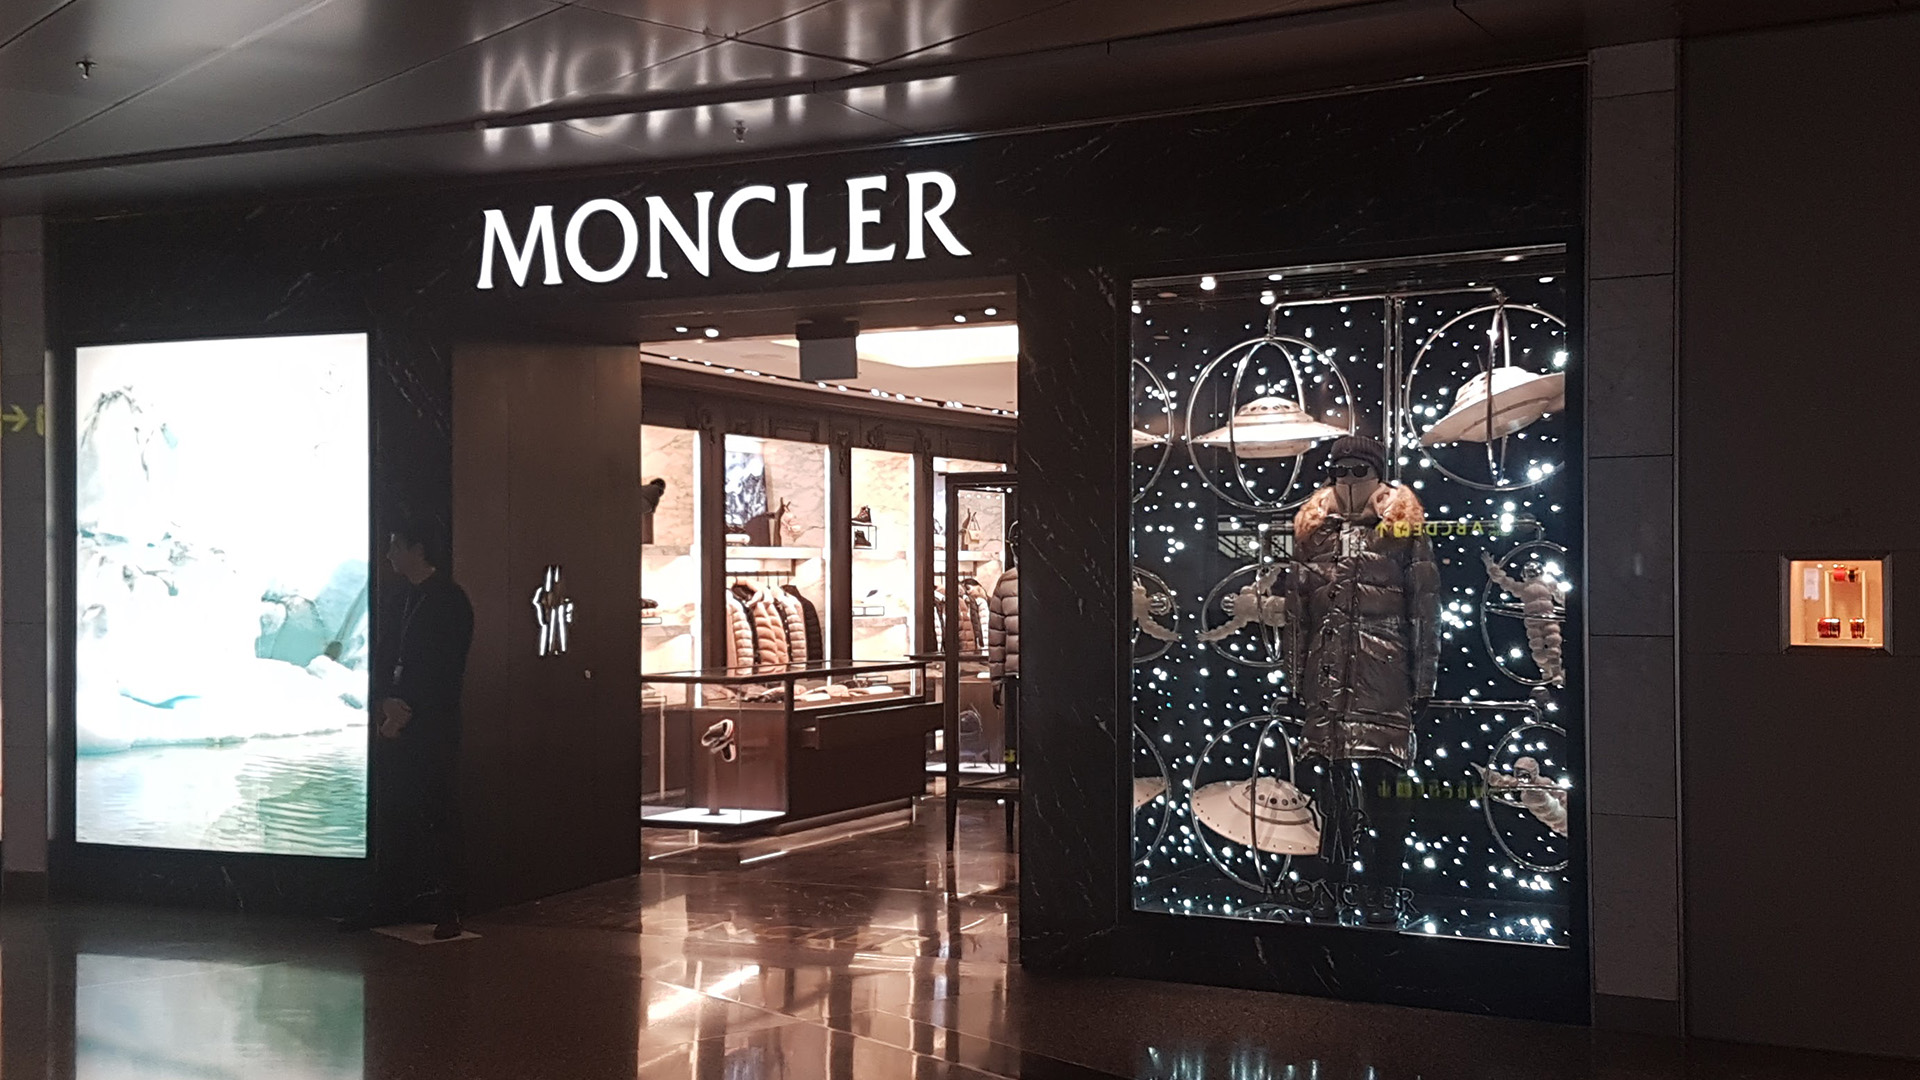 Moncler Spaceman Window at Hamad International Airport - fabricated and installed by ME Visual, Qatar